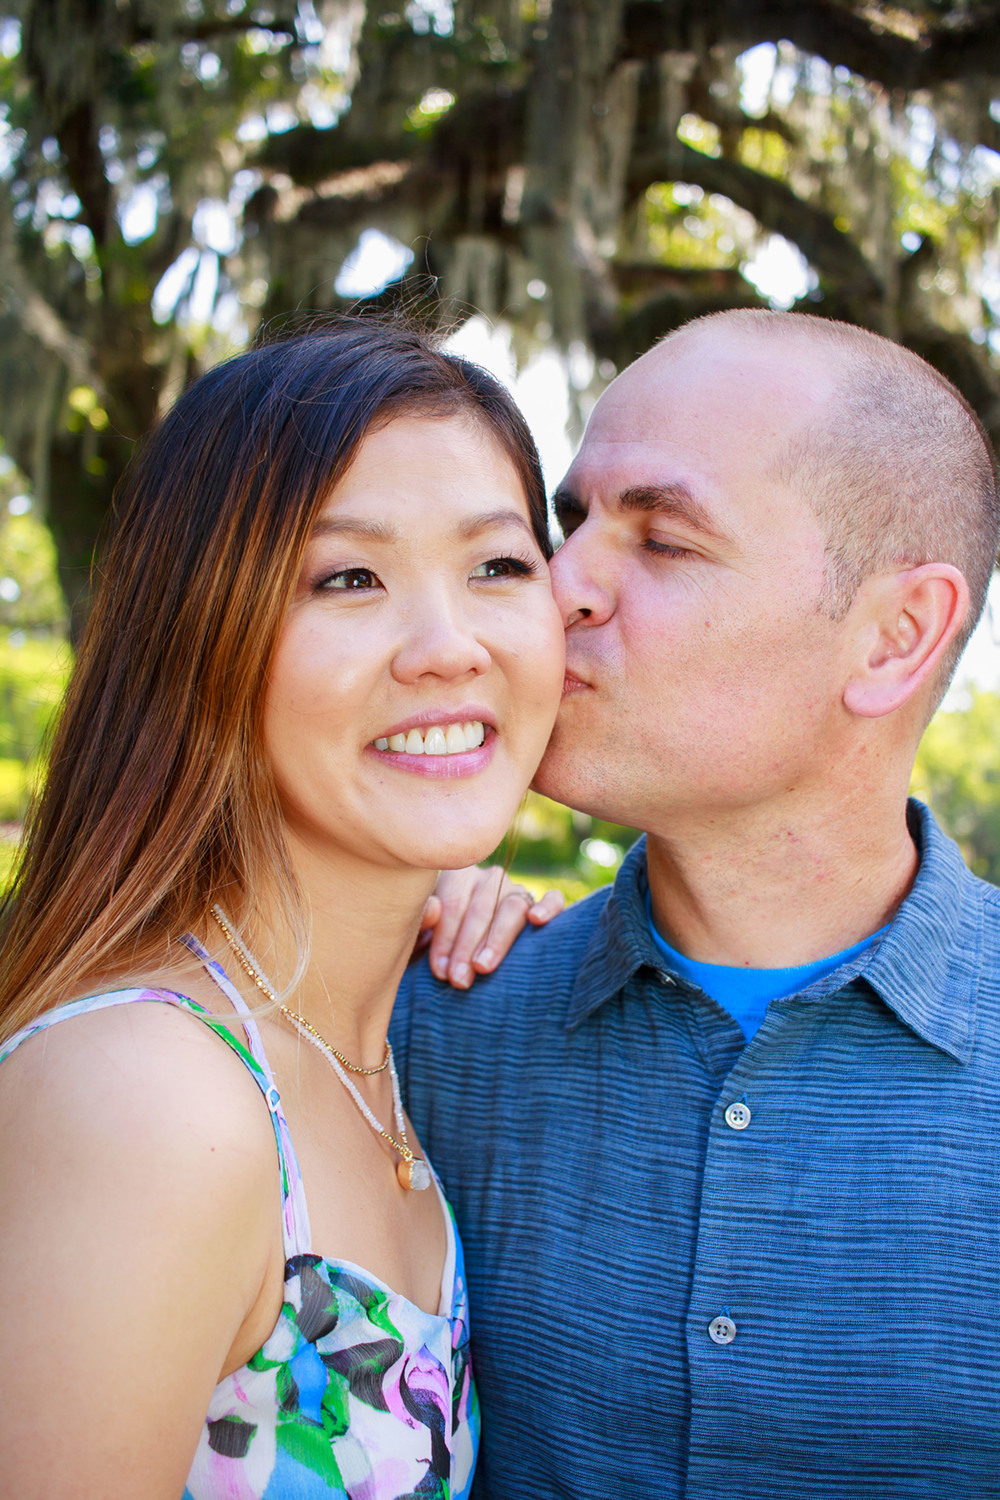 Airlie_Gardens_Engagement_Photography_Brian_&_Amy_58.jpg